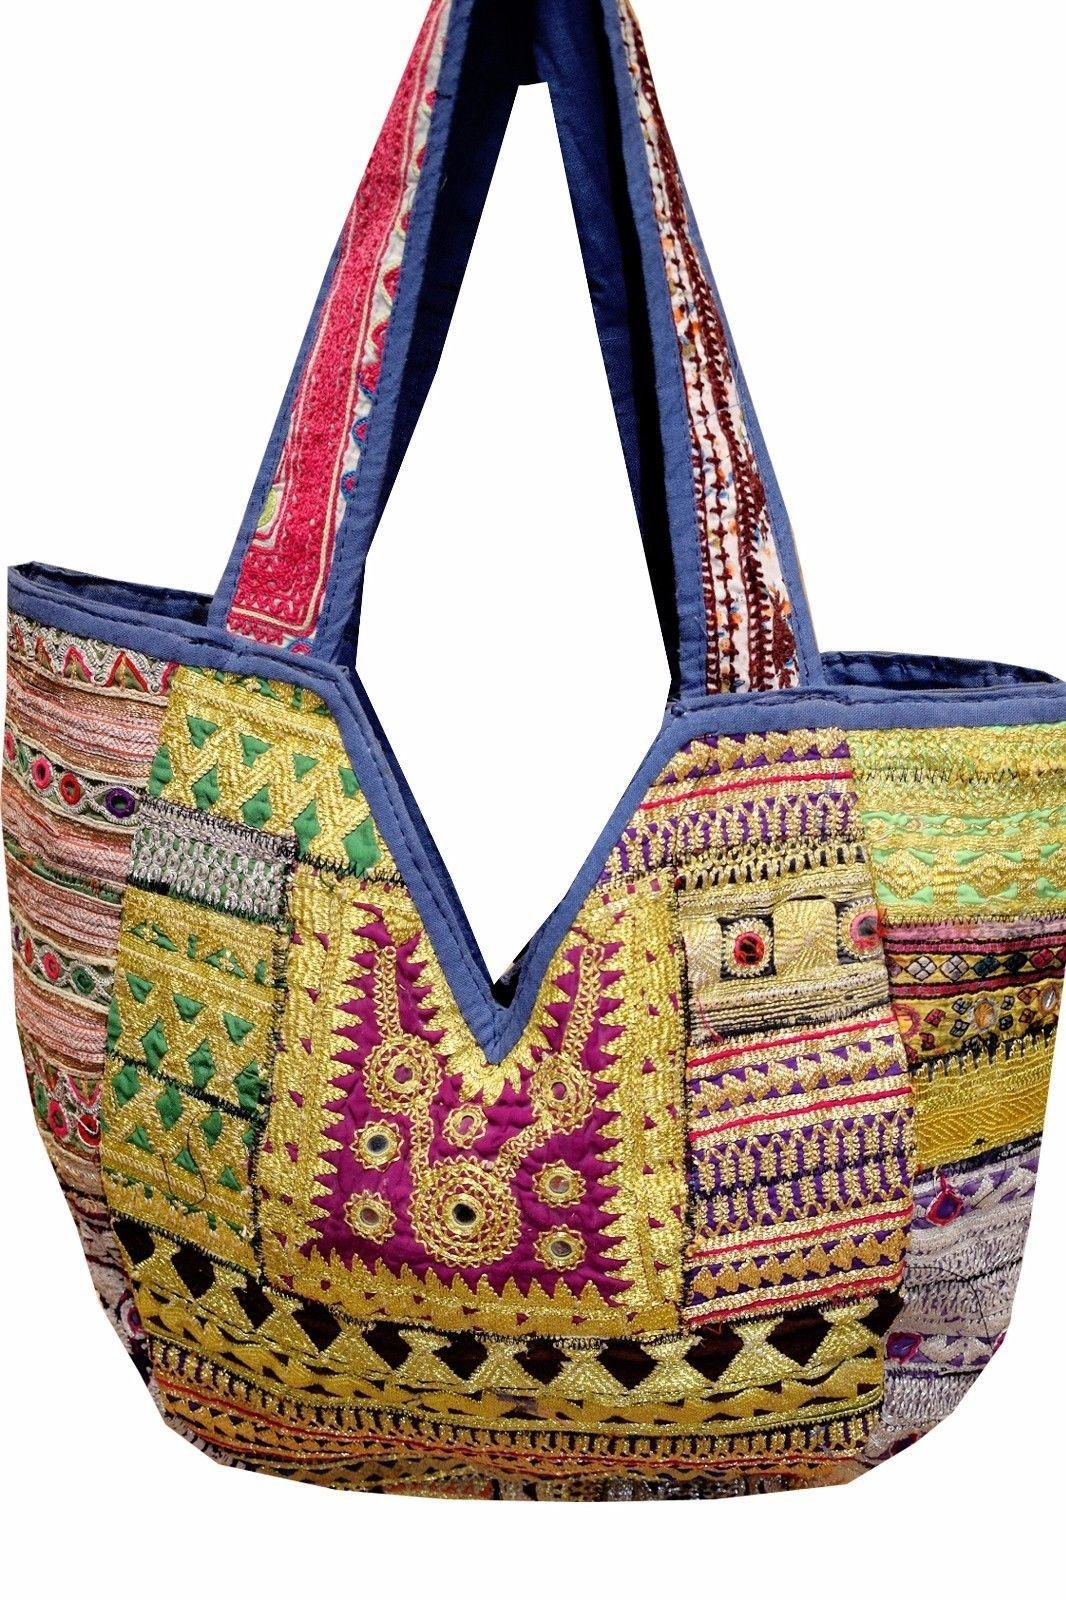 New Womens Embroideried PatchWork Vintage Banjara Big Leather Shopper Bags Hobo Tote Shoulder Bags